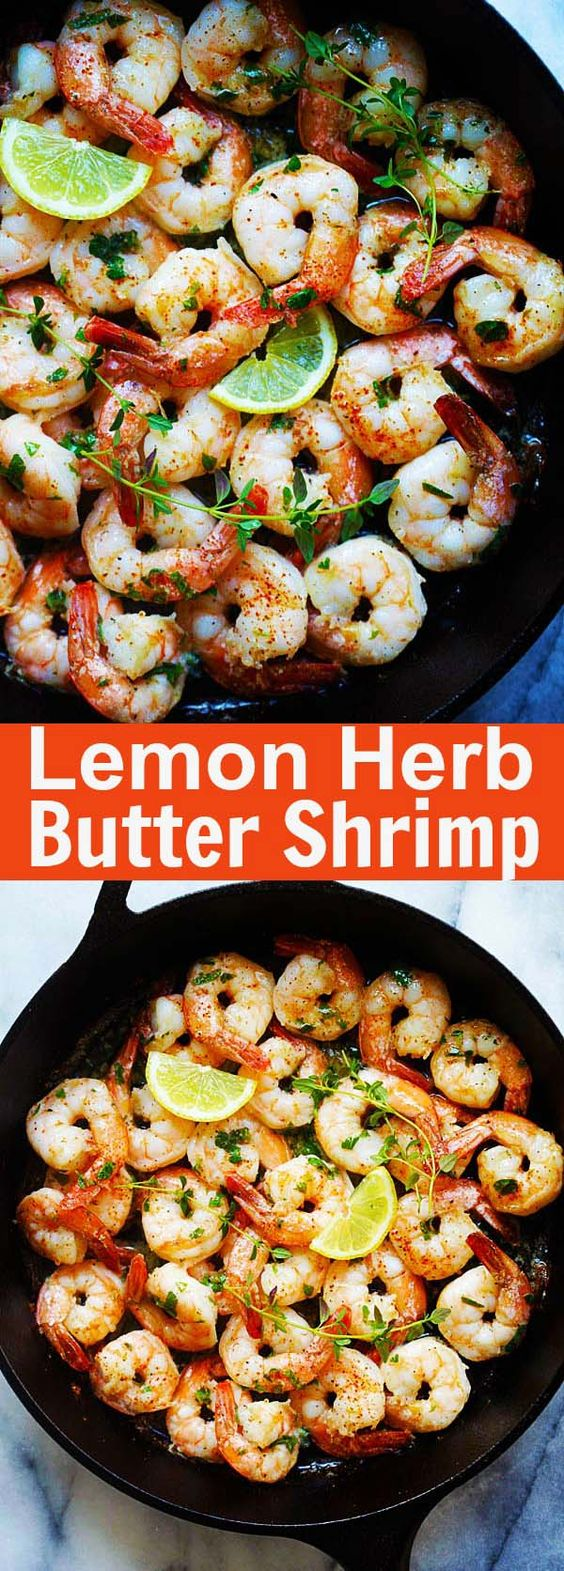 Lemon Herb Butter Shrimp - crazy easy and delicious skillet sauteed shrimp with lemon butter and herbs this recipe takes less than 15 mins | rasamalaysia.com